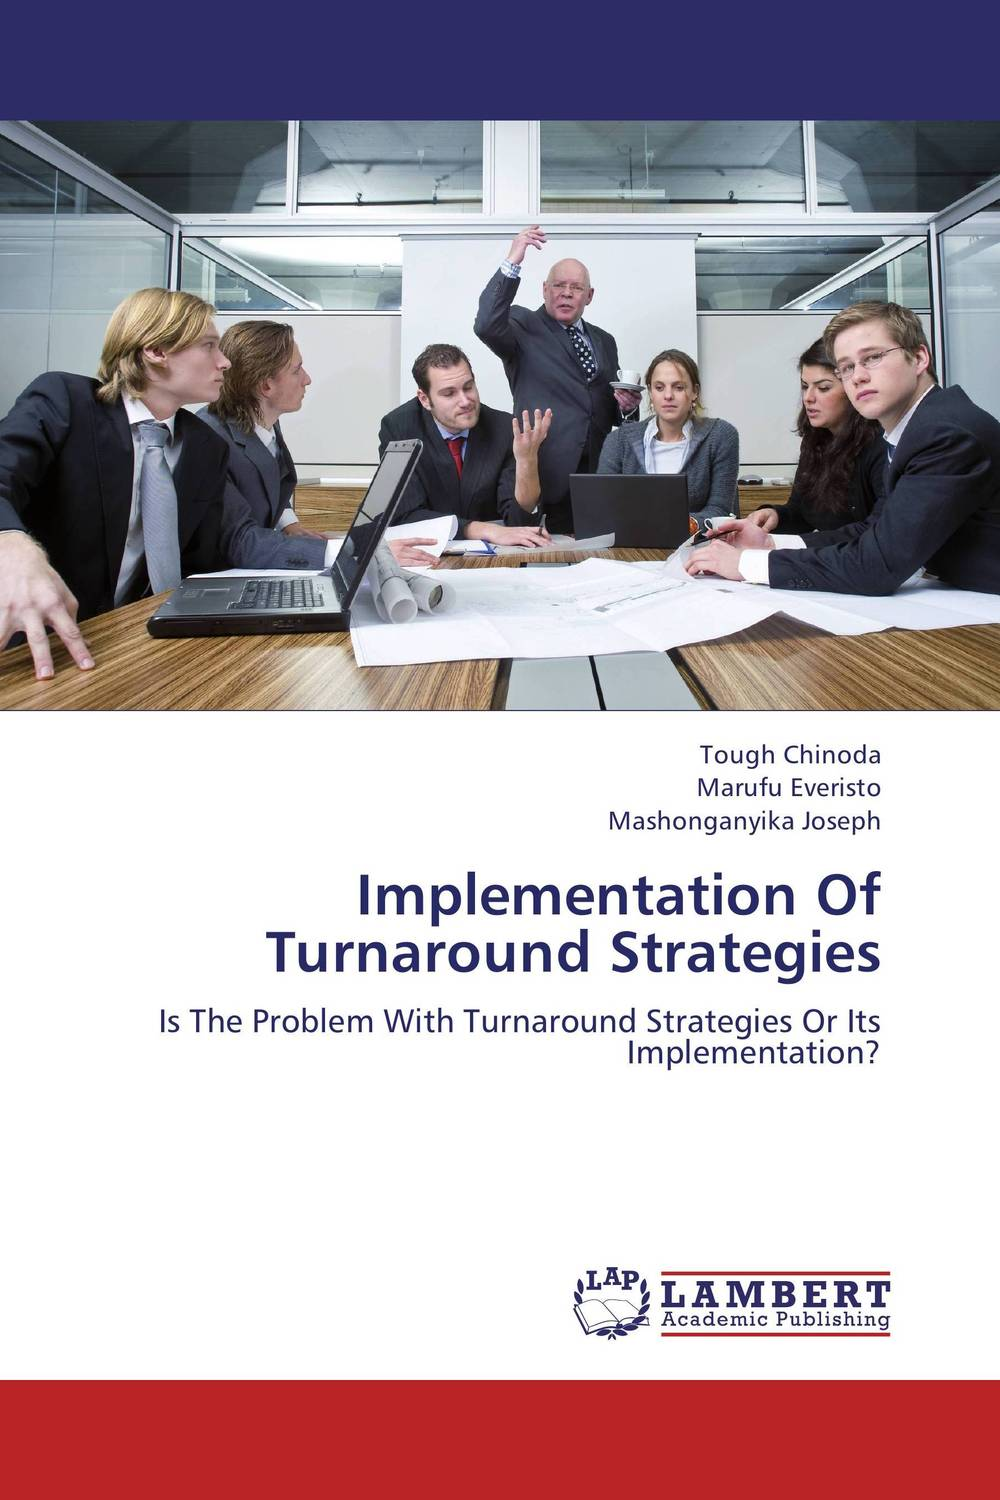 Implementation Of Turnaround Strategies against the grain